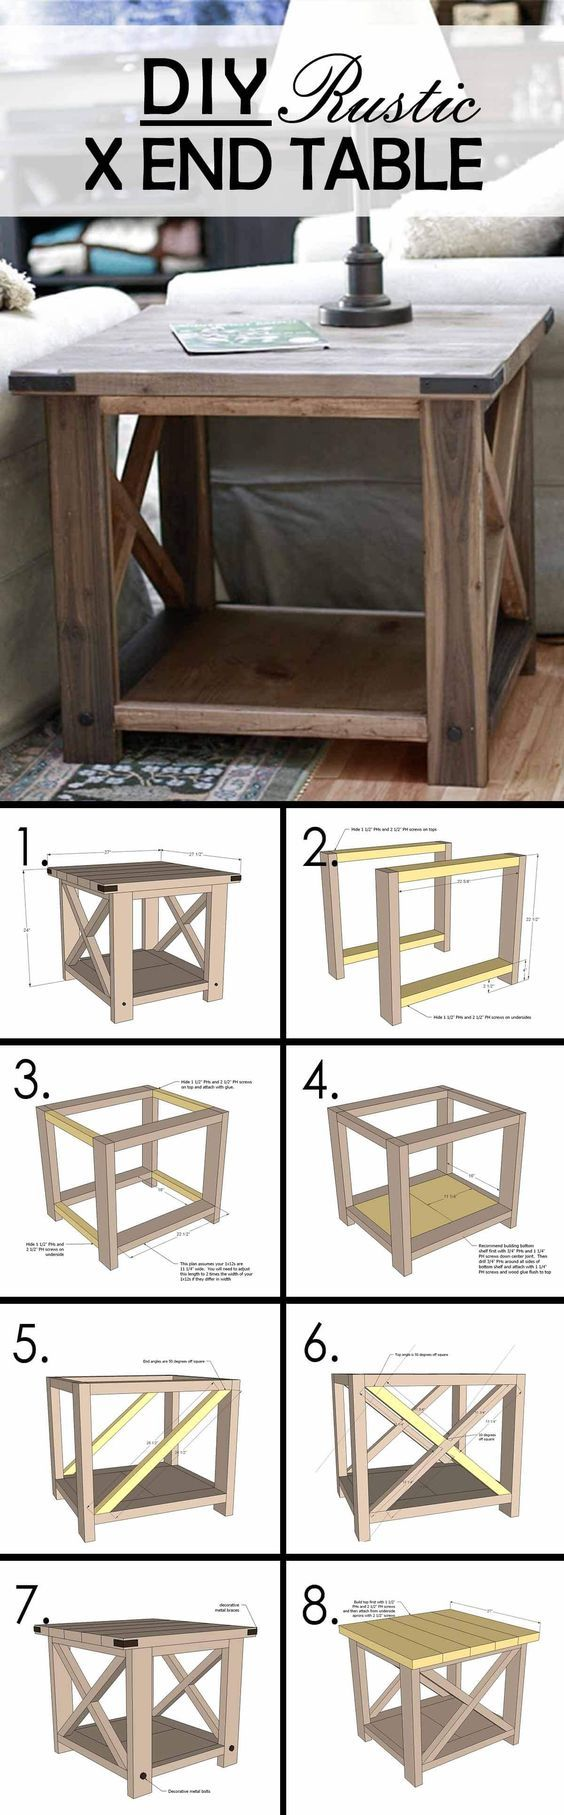 outdoor side table plans diy coffee ideas farmhouse that are both practical and ikea wood resin end tables nautical themed gifts clear plexiglass long turquoise inch nightstand